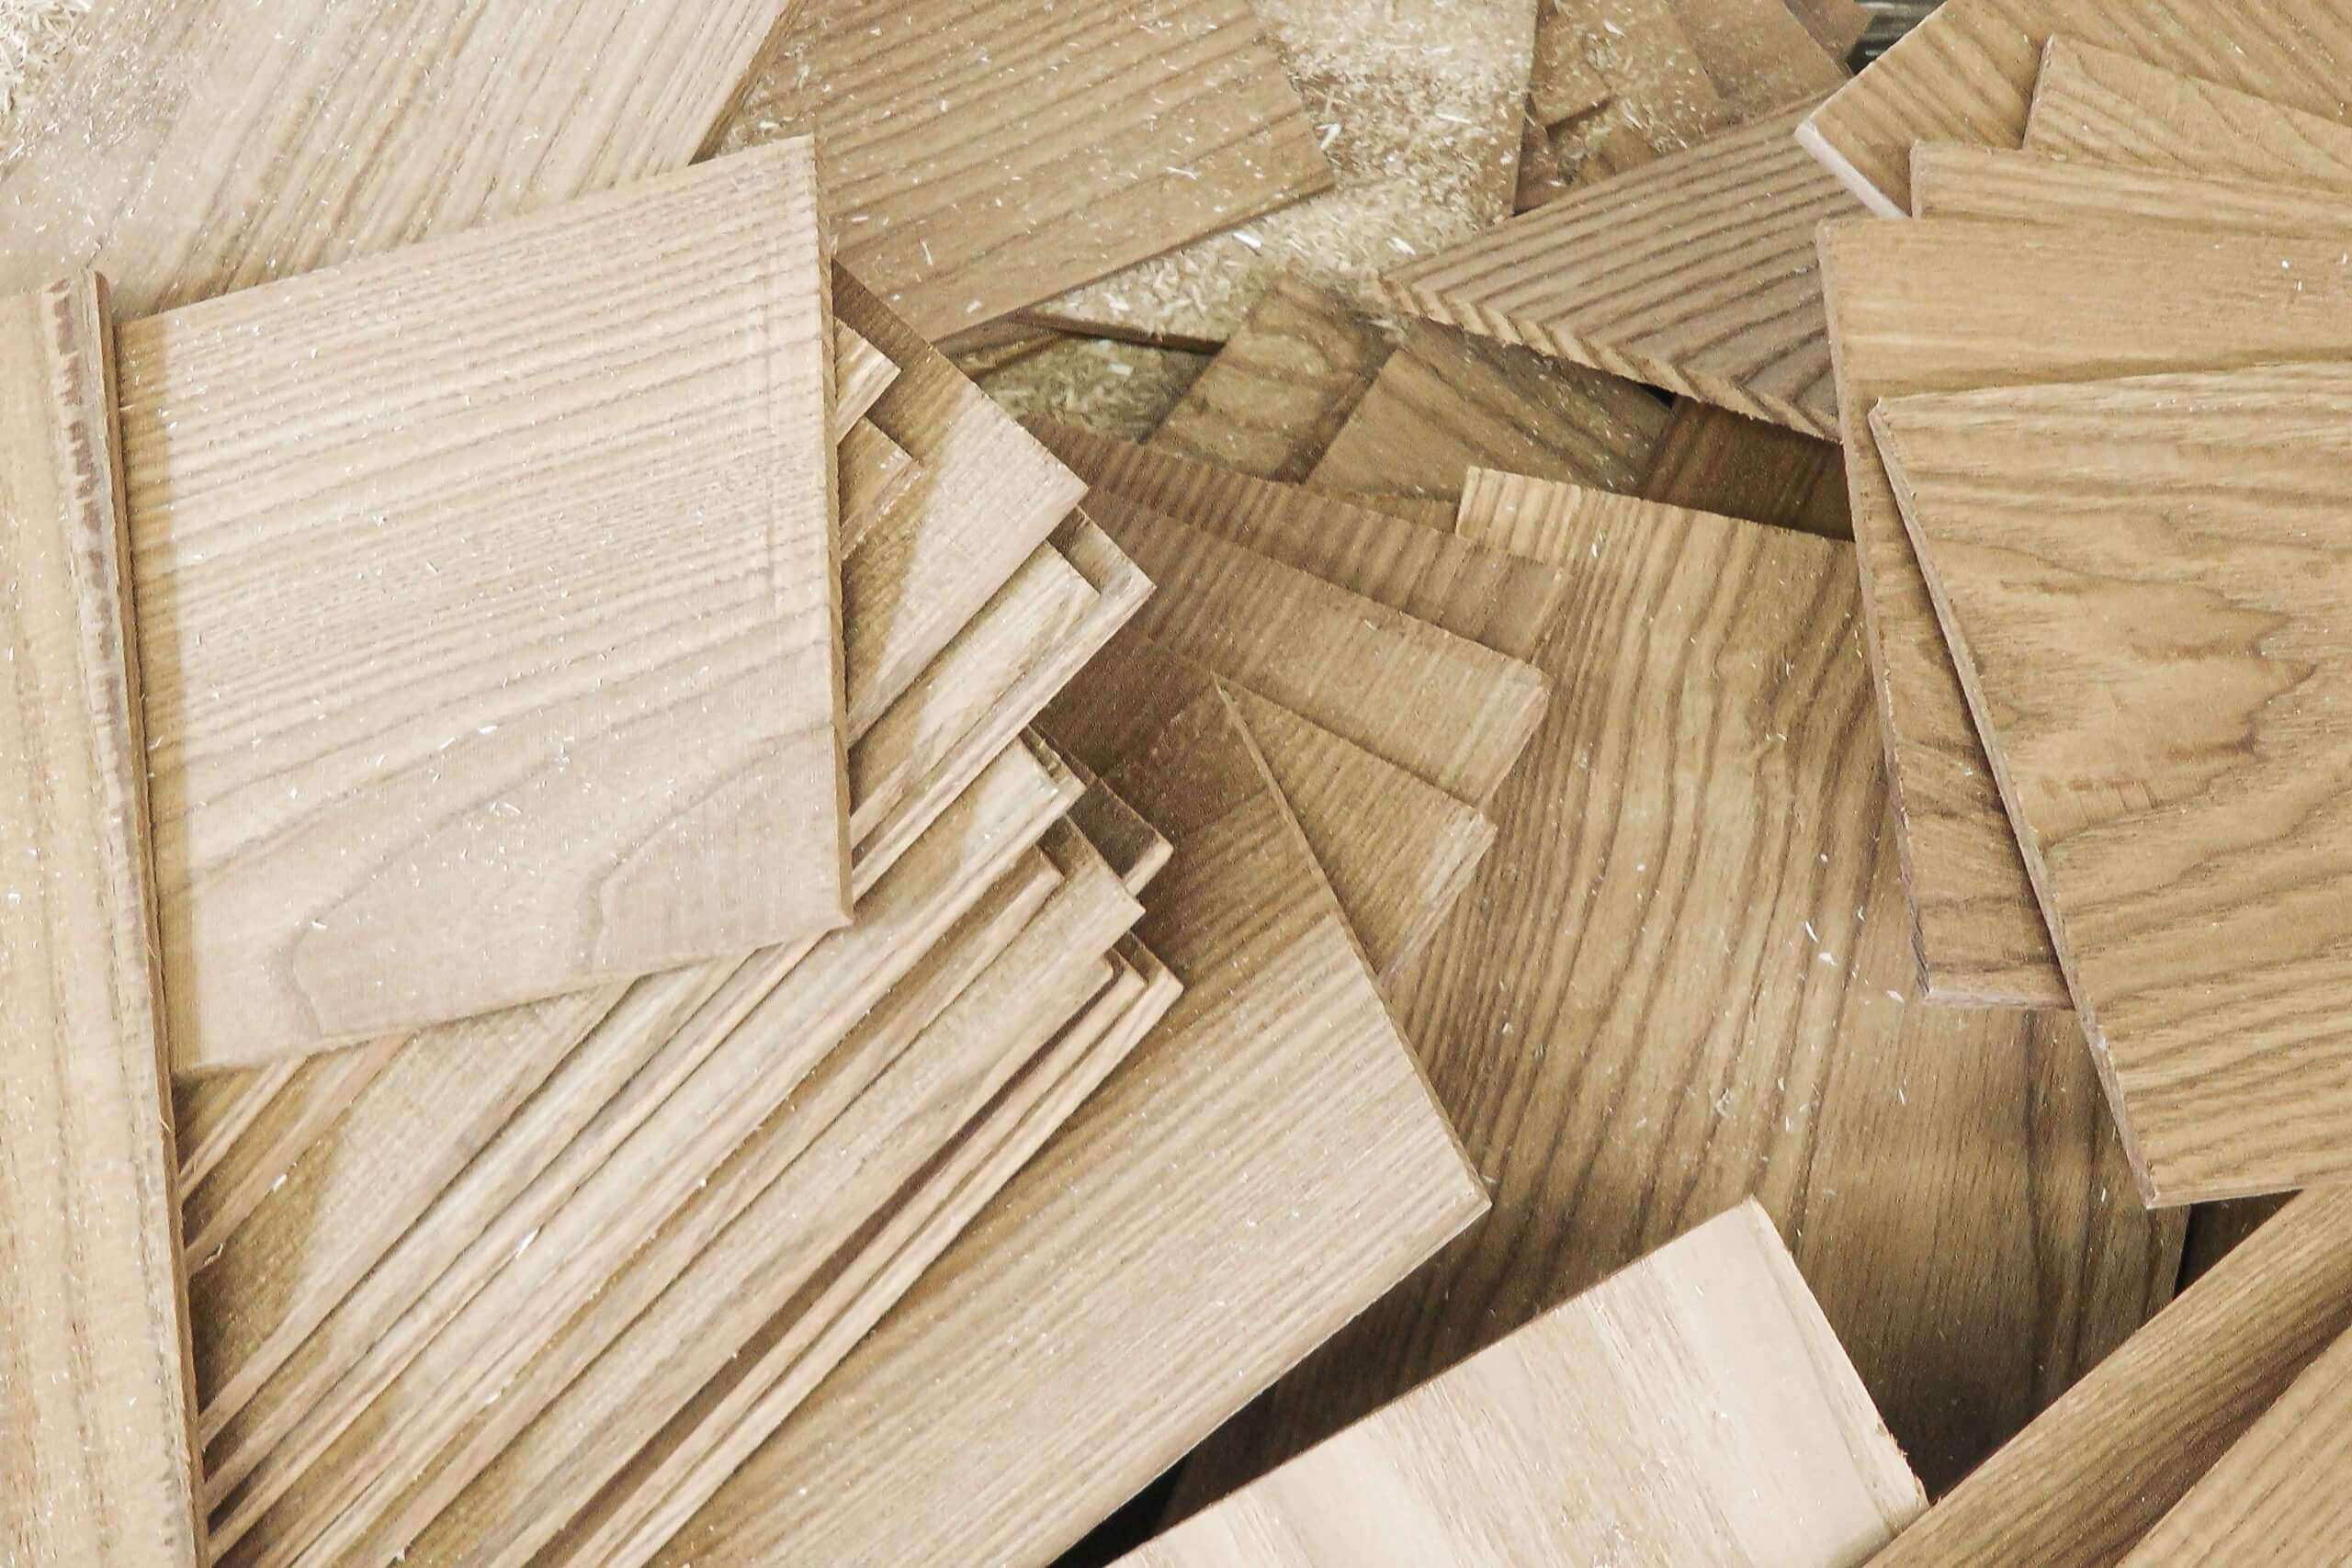 Wood waste such as plywood cuttings